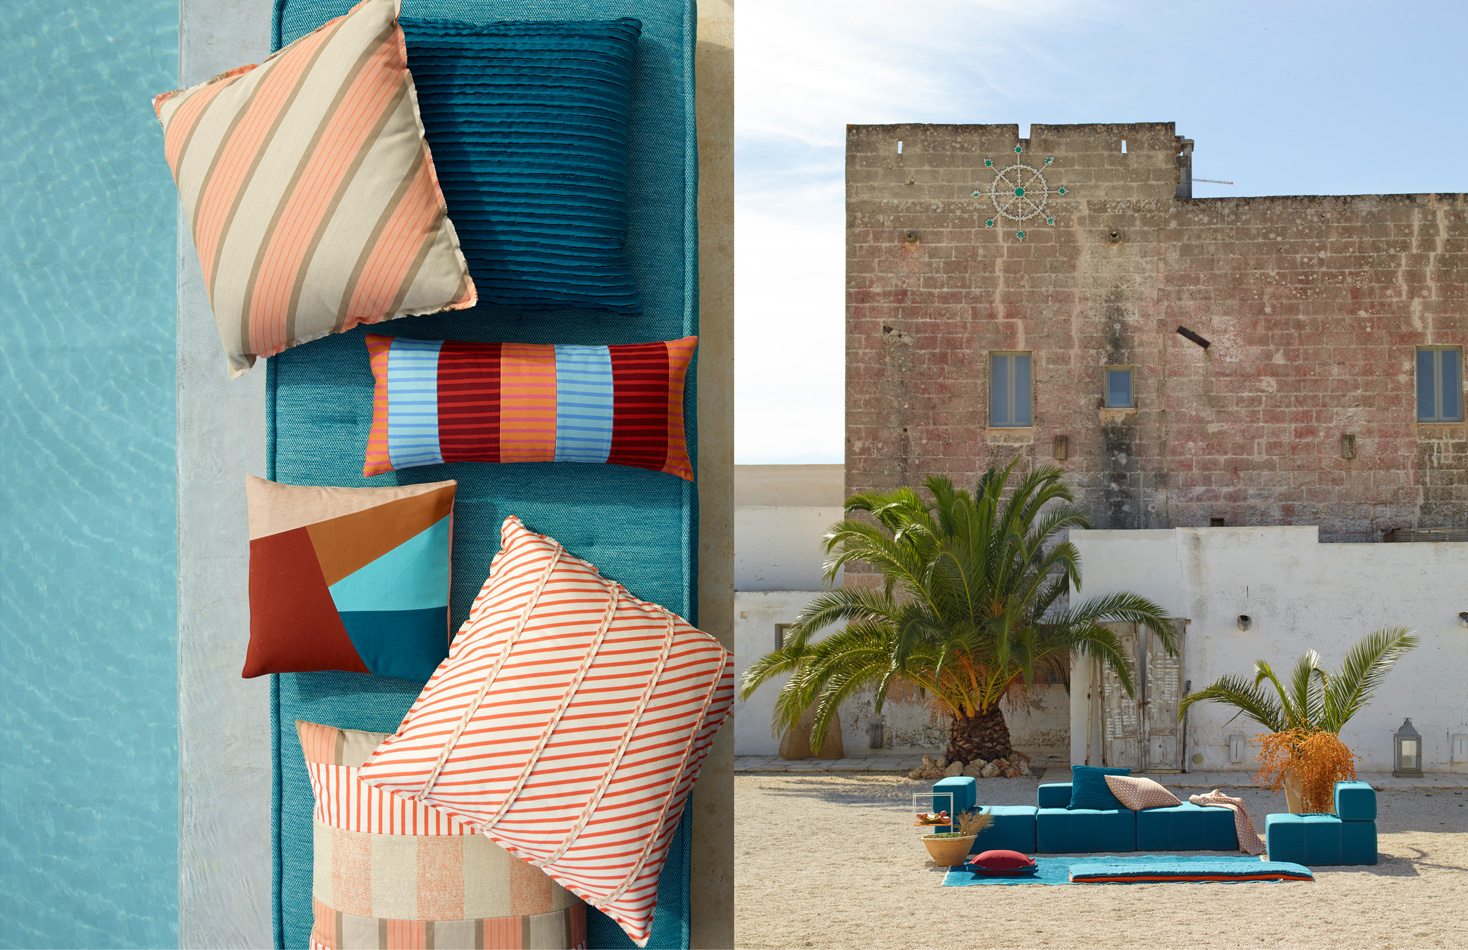 Sunbrella Italy: Pool Pillows and Outdoor Couch